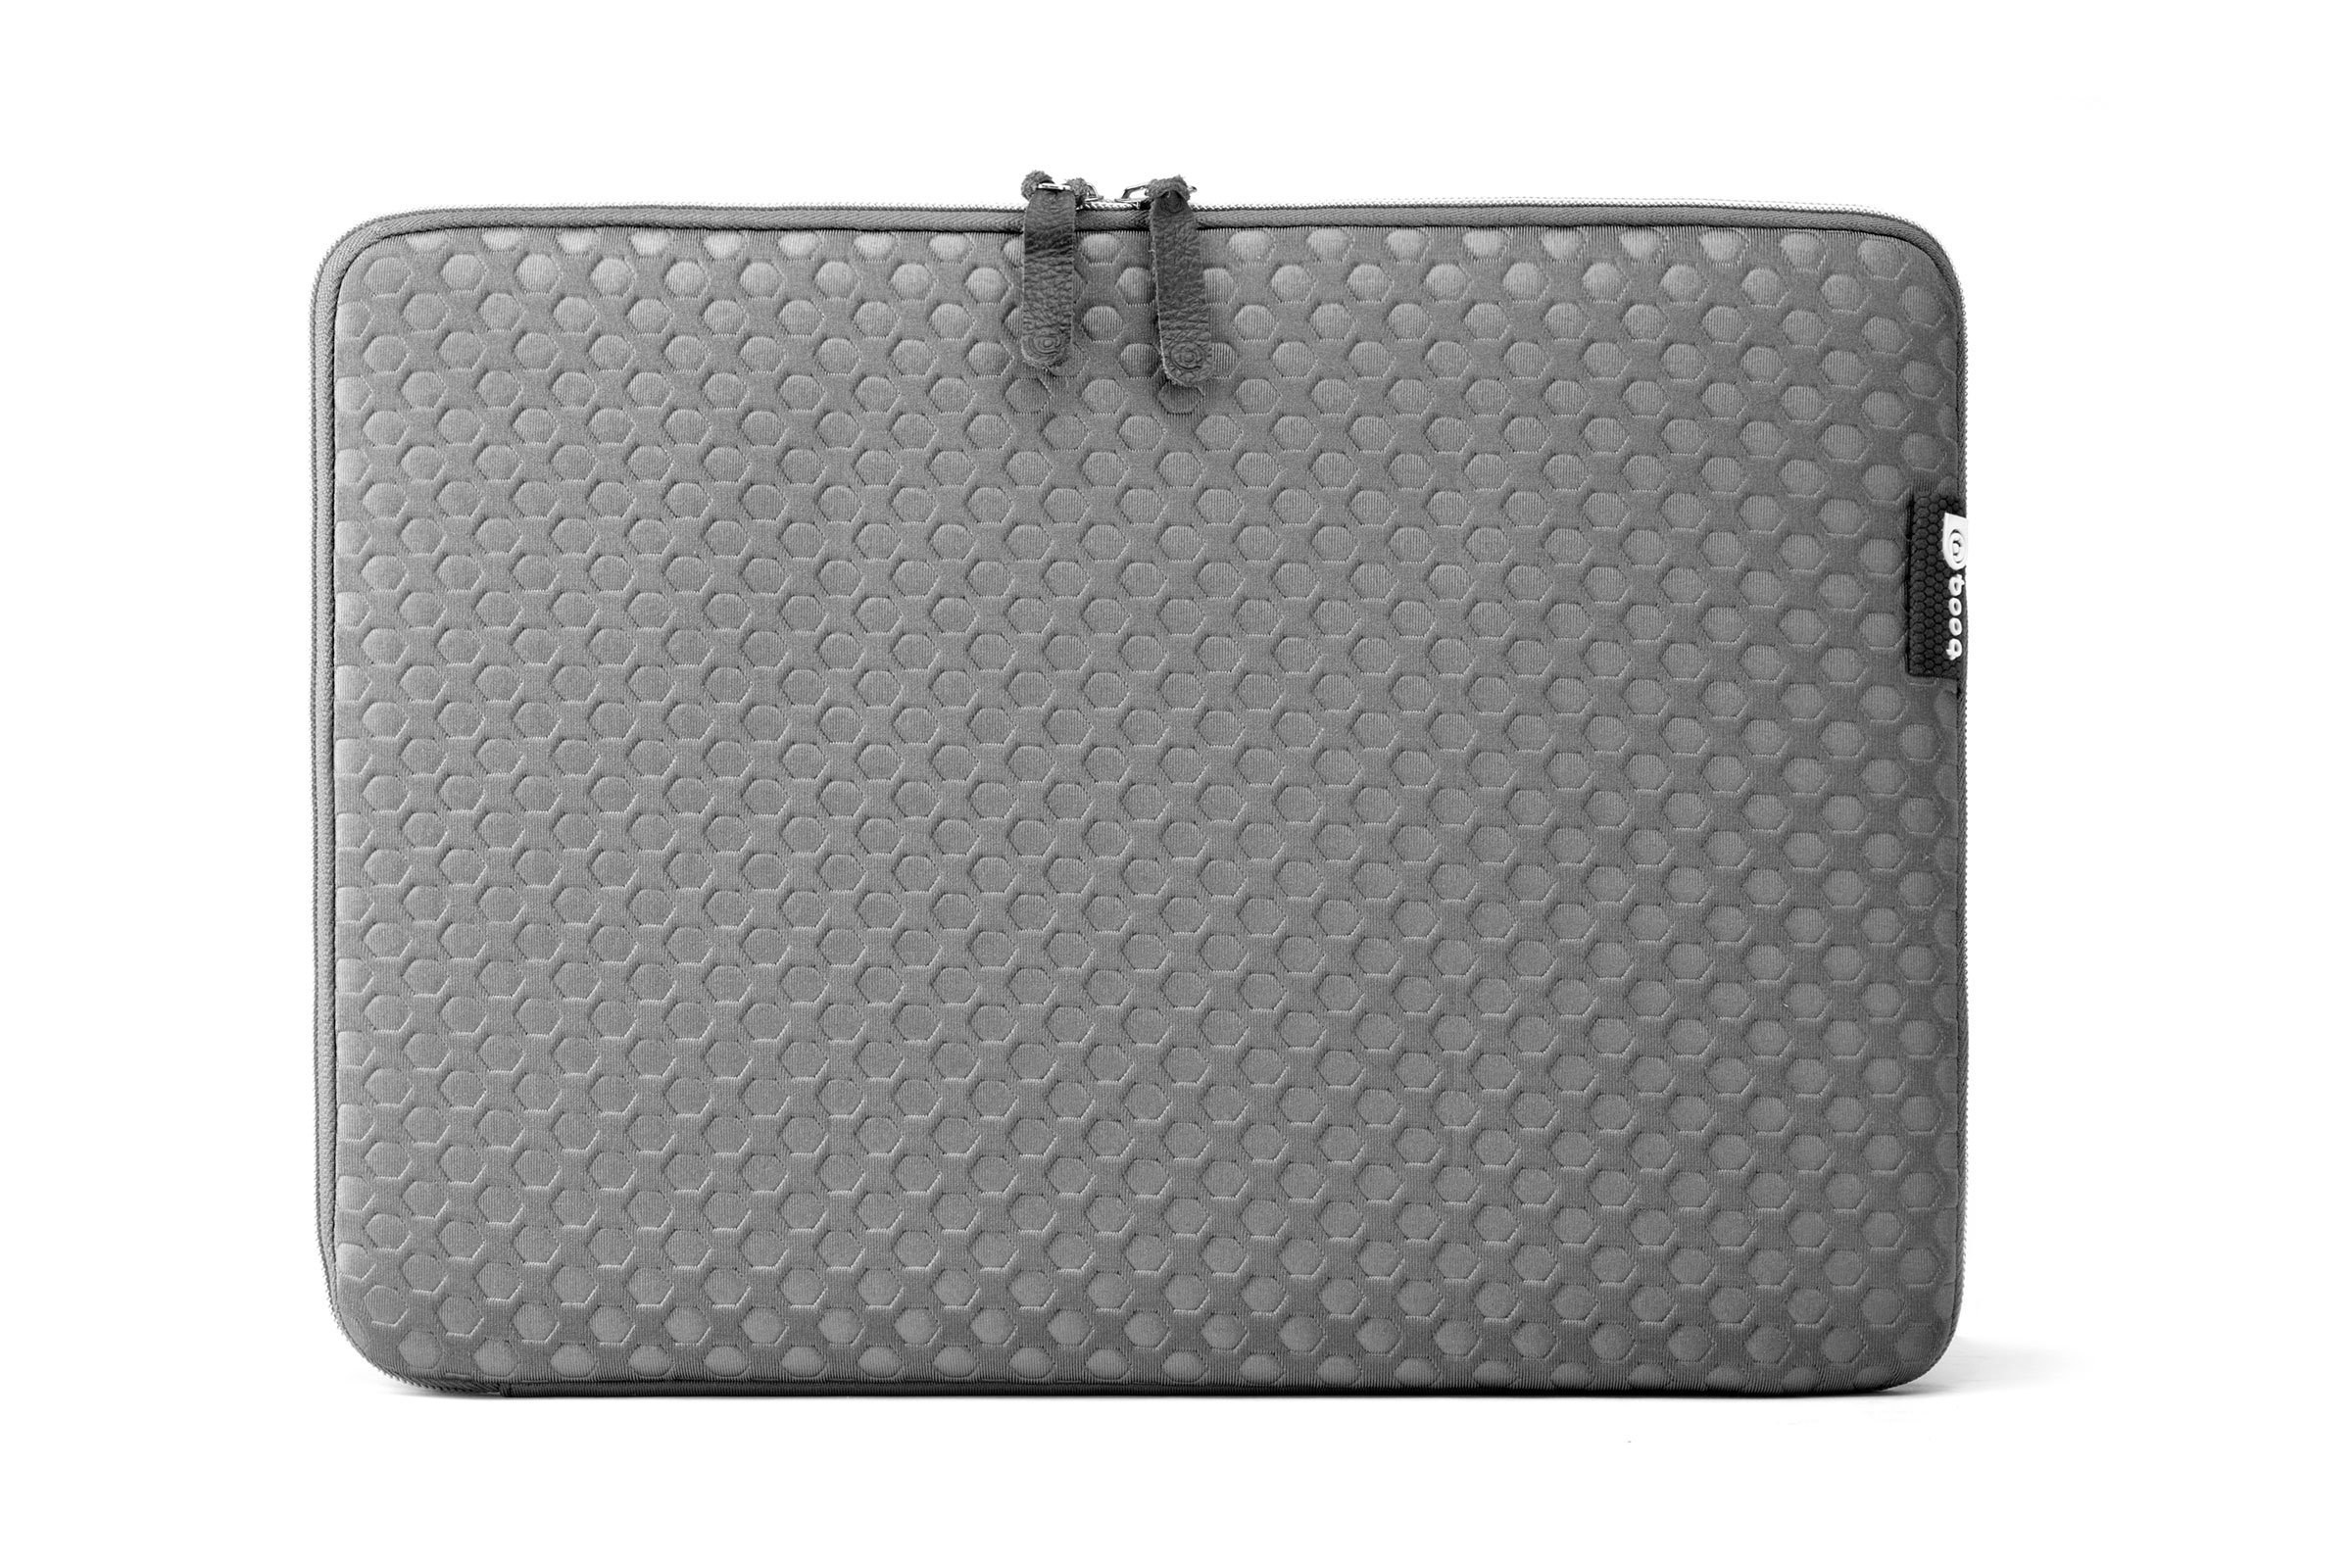 Booq Taipan Spacesuit 13 Gray - Funda de neopreno para Apple MacBook Pro/ Air /Retina 13, color gri